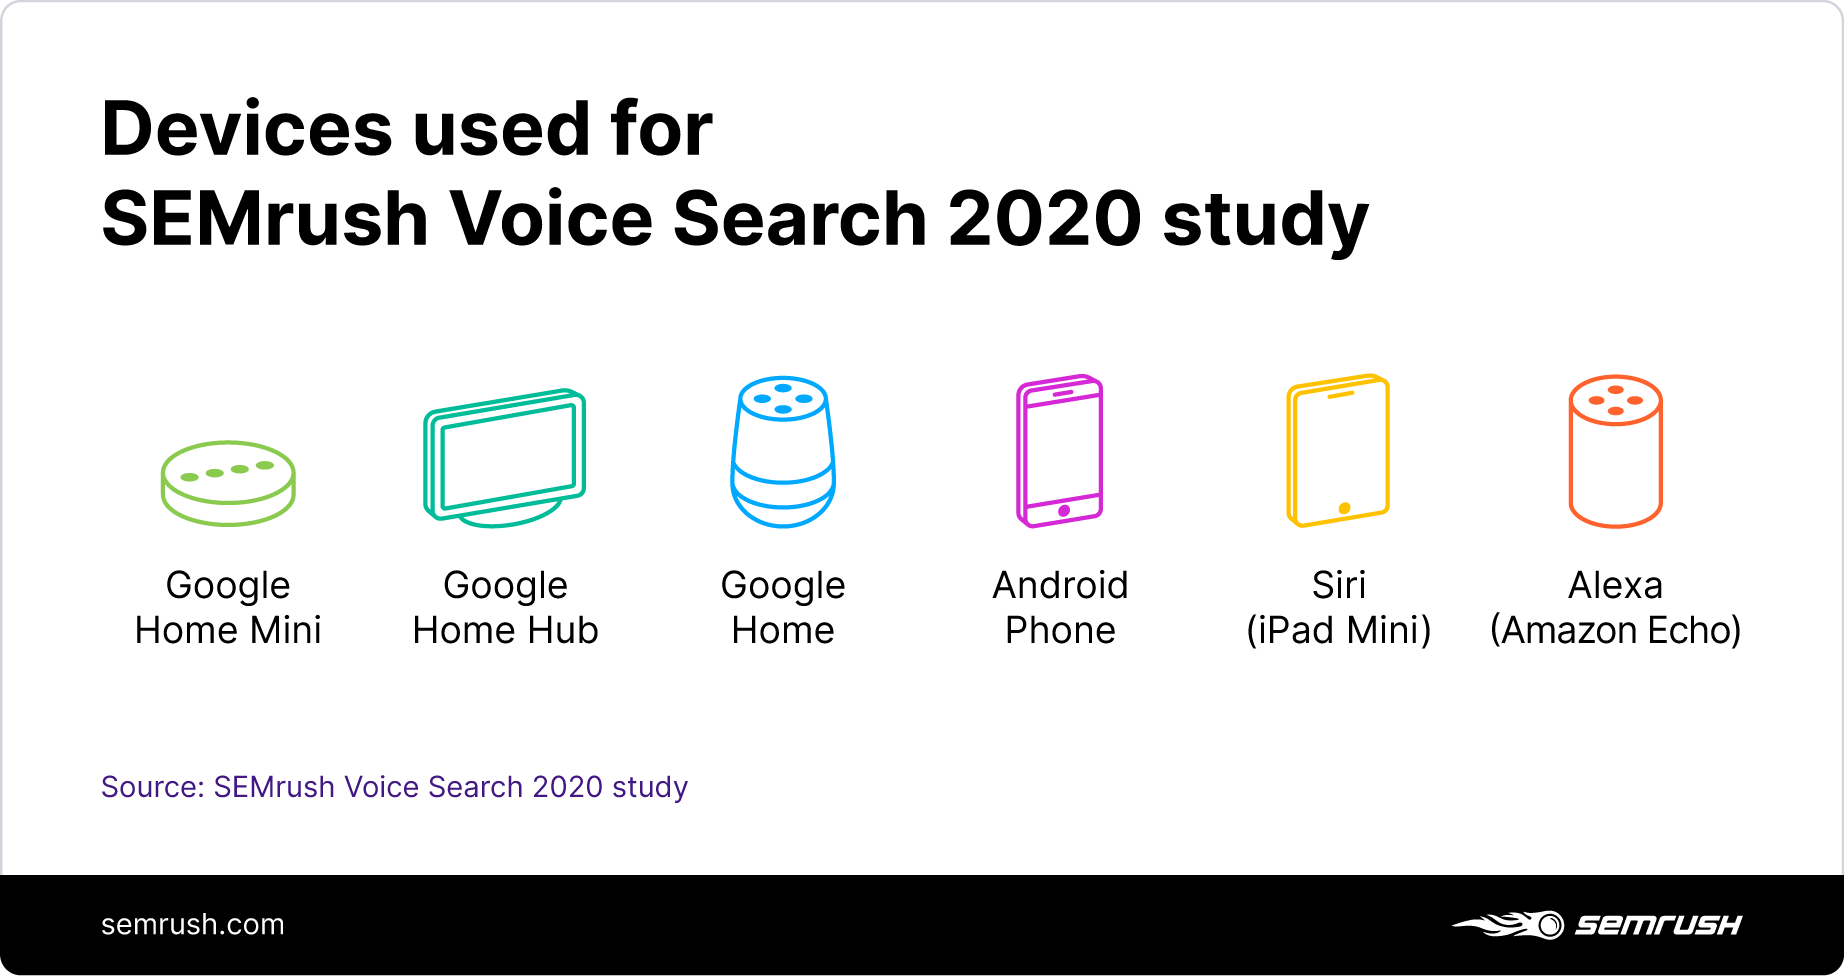 Devices used for SEMrush Voice Search 2020 study